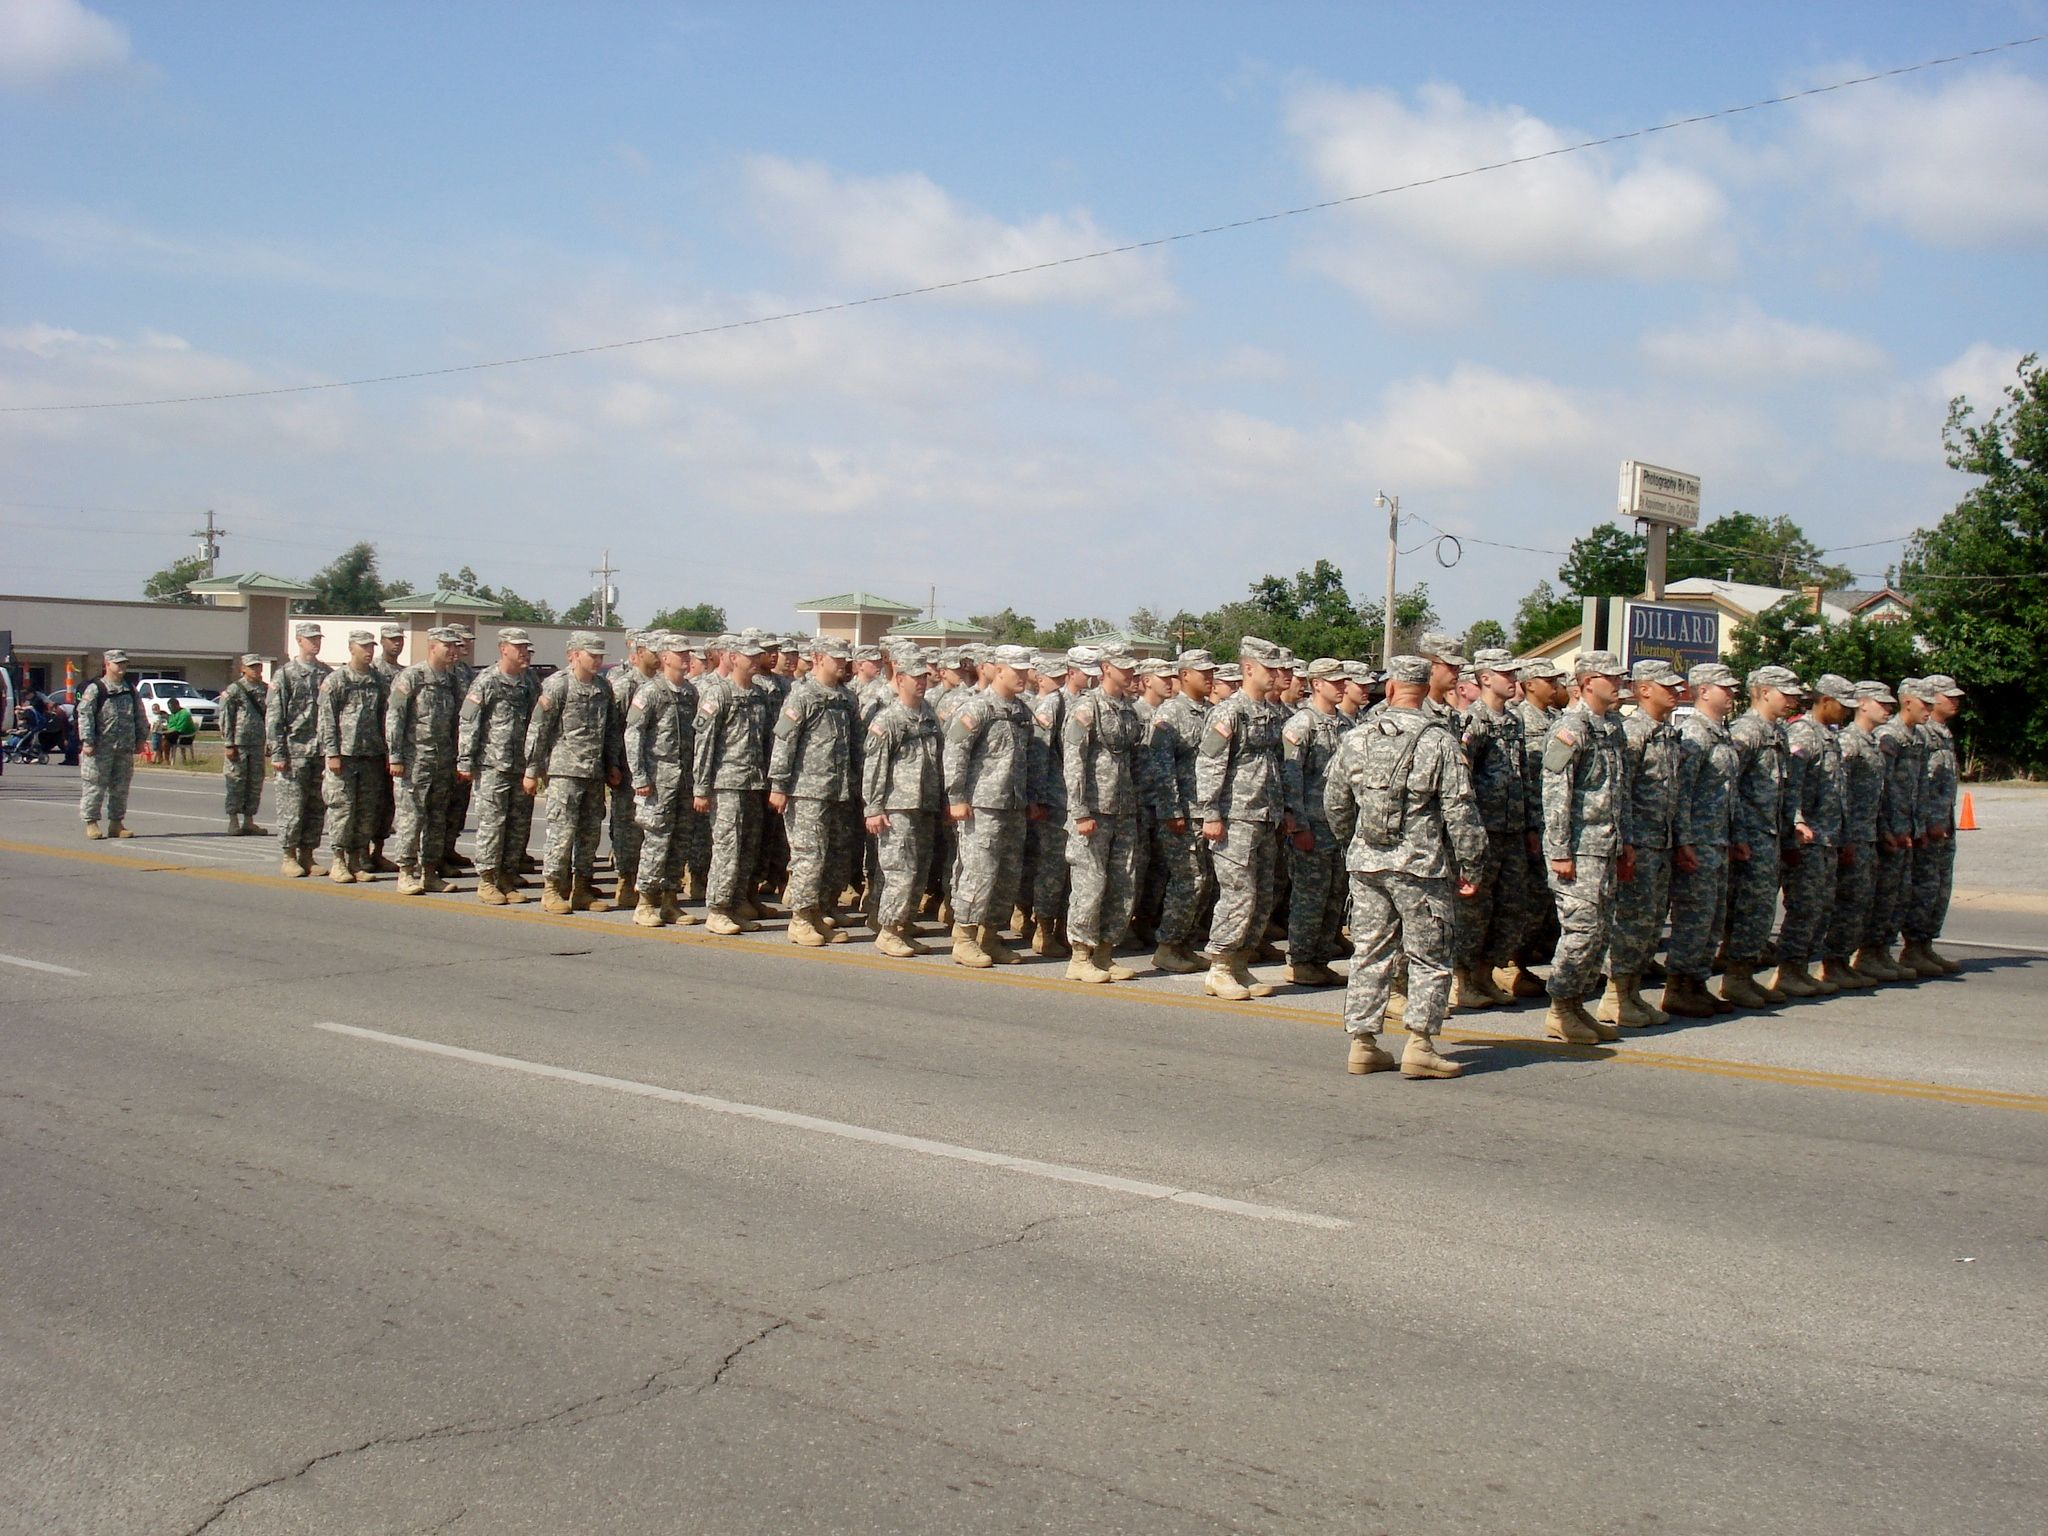 Parade at Lawton Ok Places to travel, Troops, Fort sill